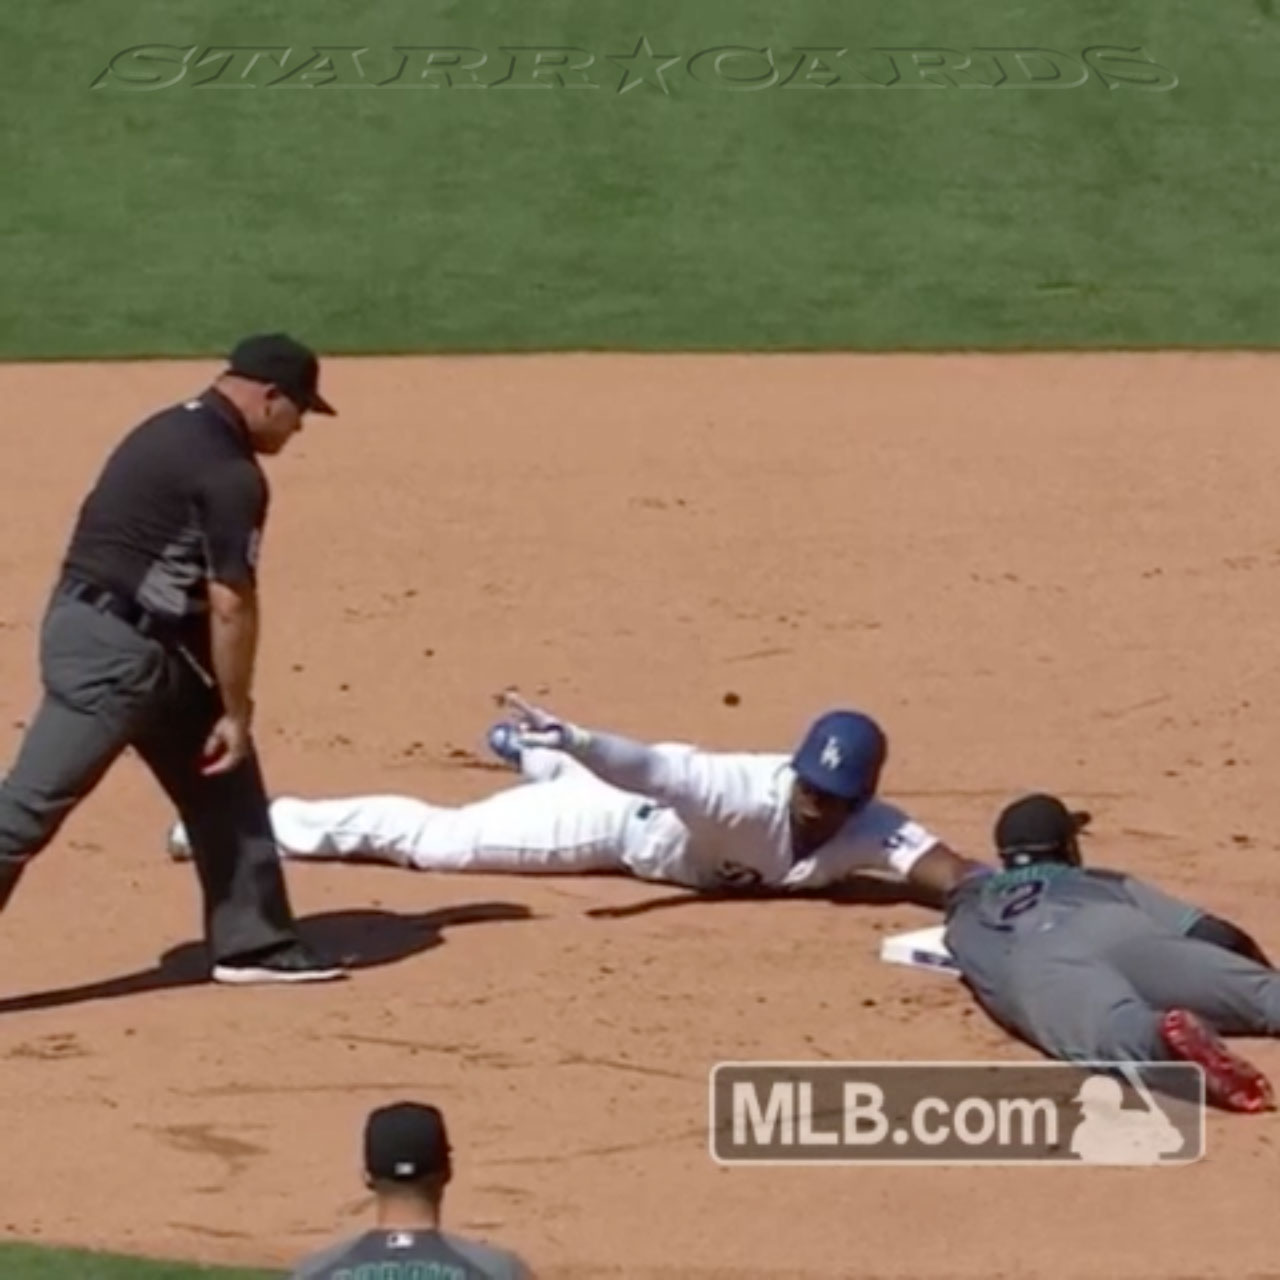 Dodgers' Yasiel Puig is safe at second after avoiding tag